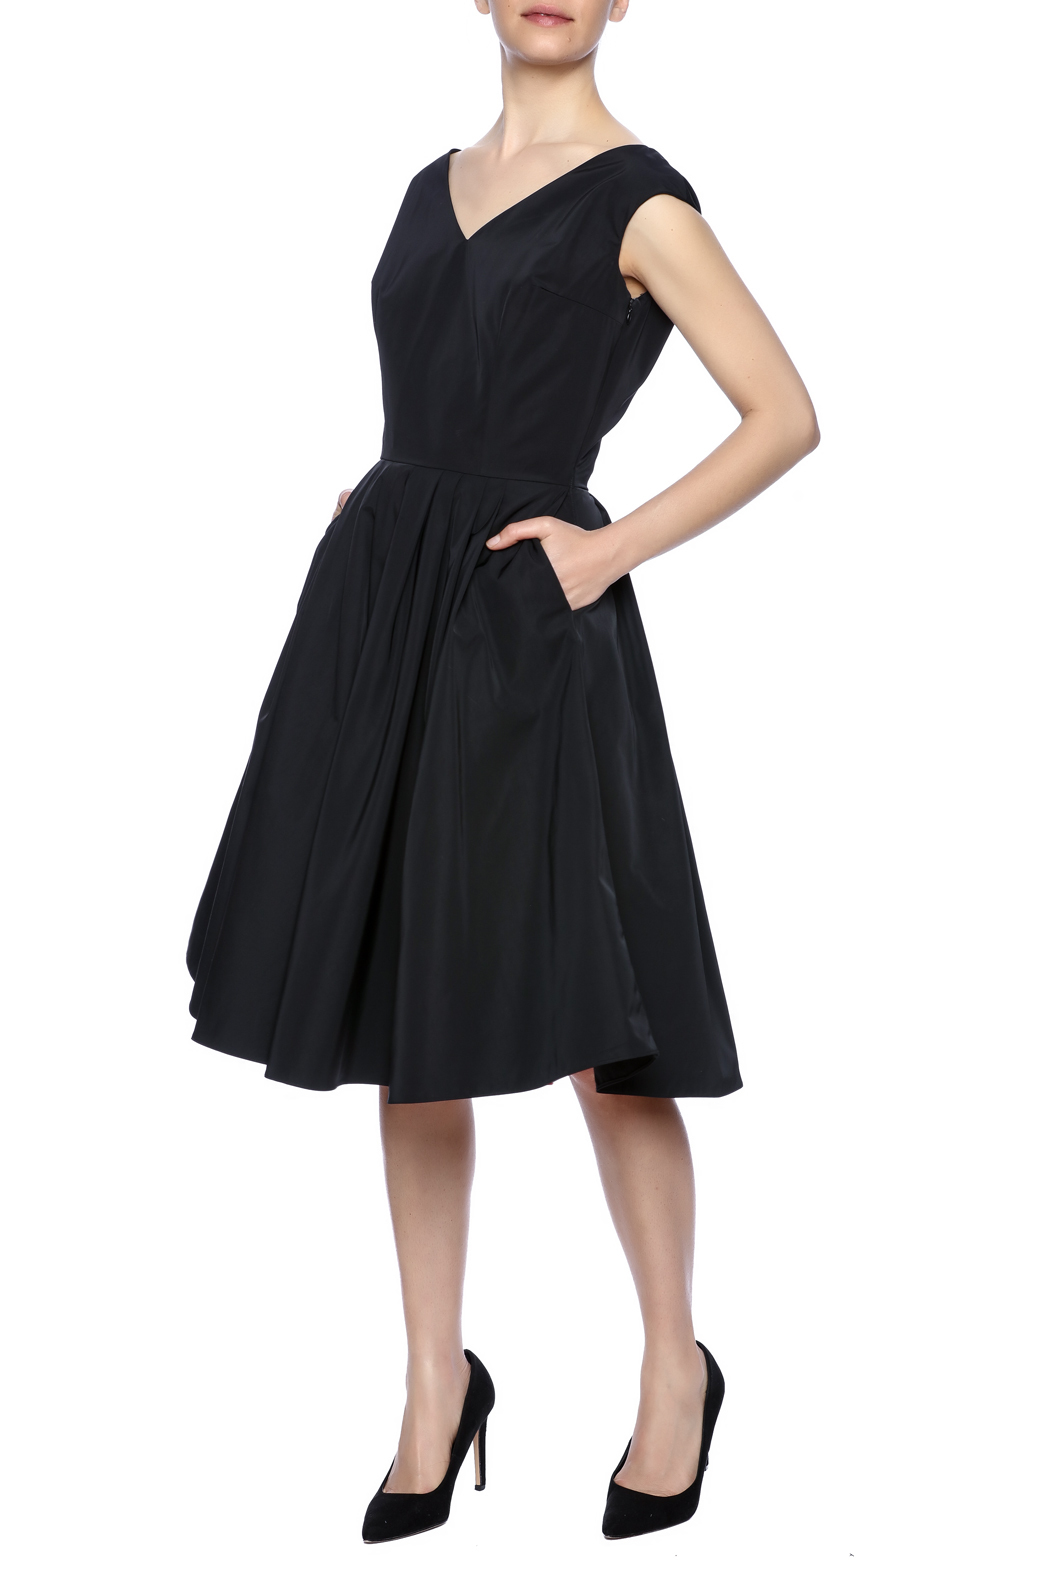 Robert Greco Couture Perfect Black Dress from Montclair by Atelier ...